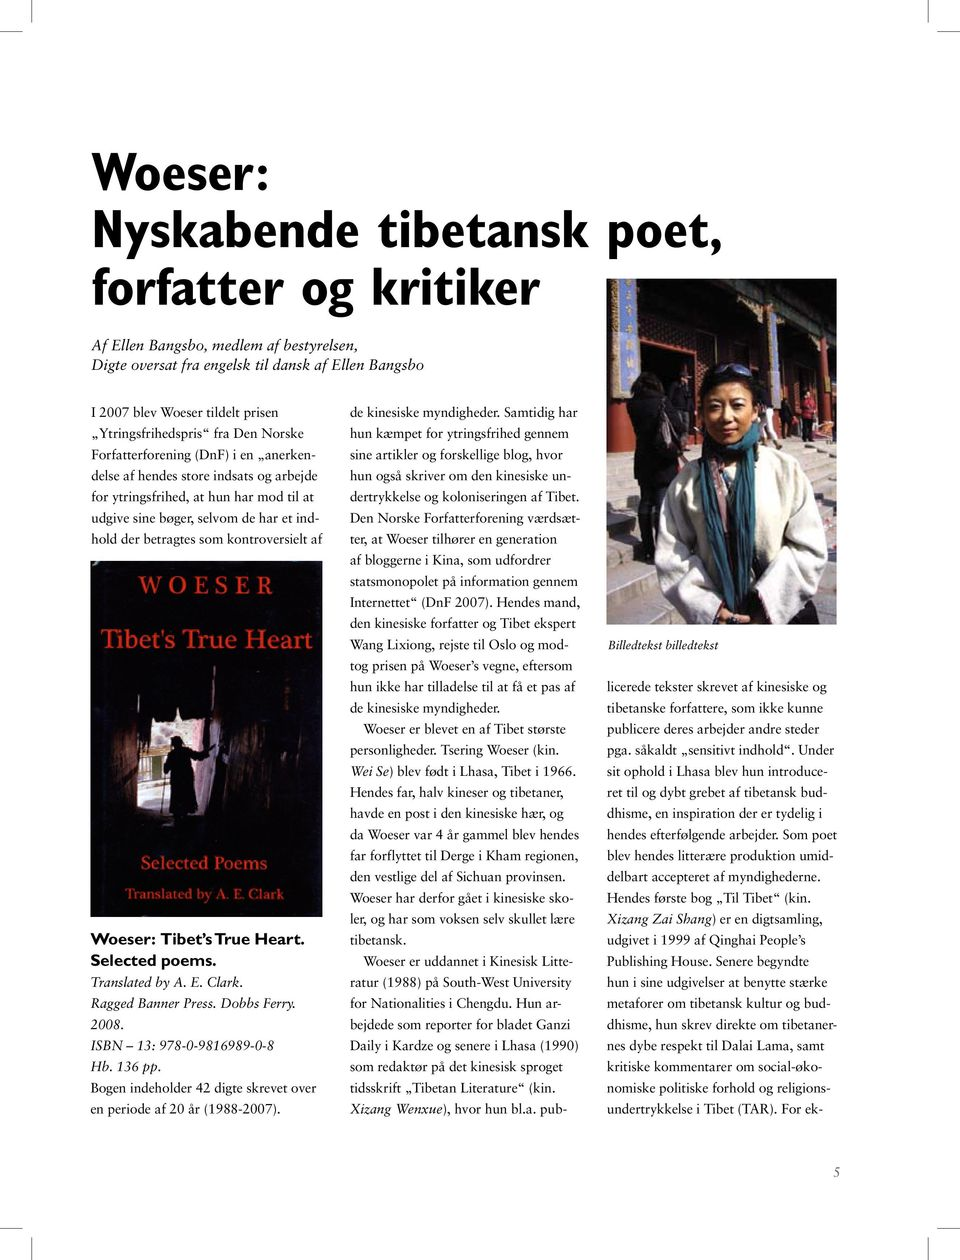 betragtes som kontroversielt af Woeser: Tibet s True Heart. Selected poems. Translated by A. E. Clark. Ragged Banner Press. Dobbs Ferry. 2008. ISBN 13: 978-0-9816989-0-8 Hb. 136 pp.